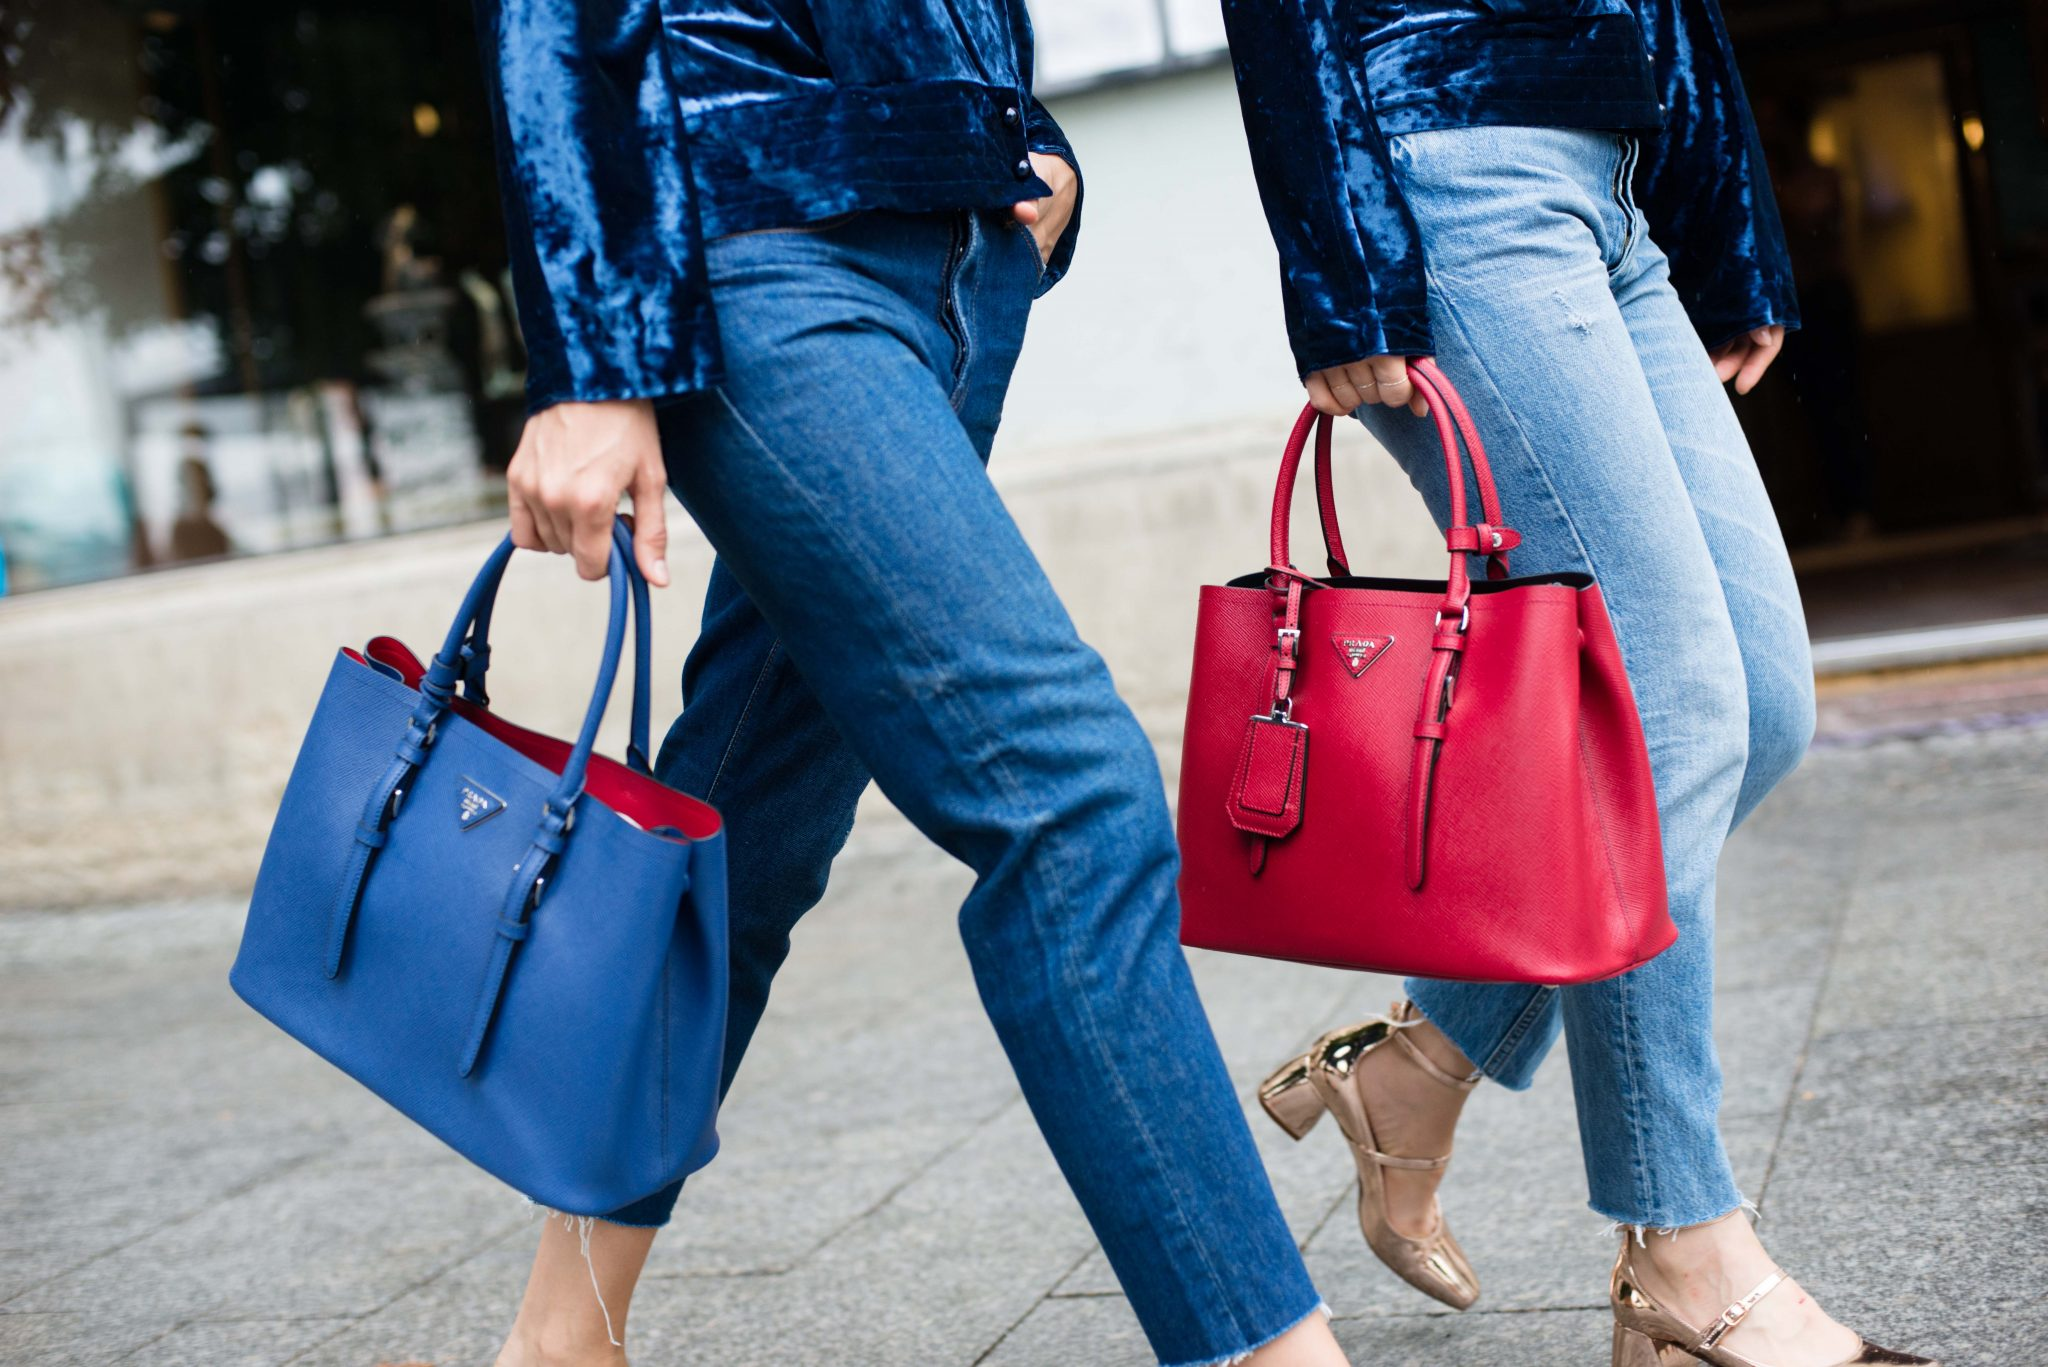 85feb33f981 BAGS THAT EVERY WOMAN SHOULD OWN - Fabulous Muses